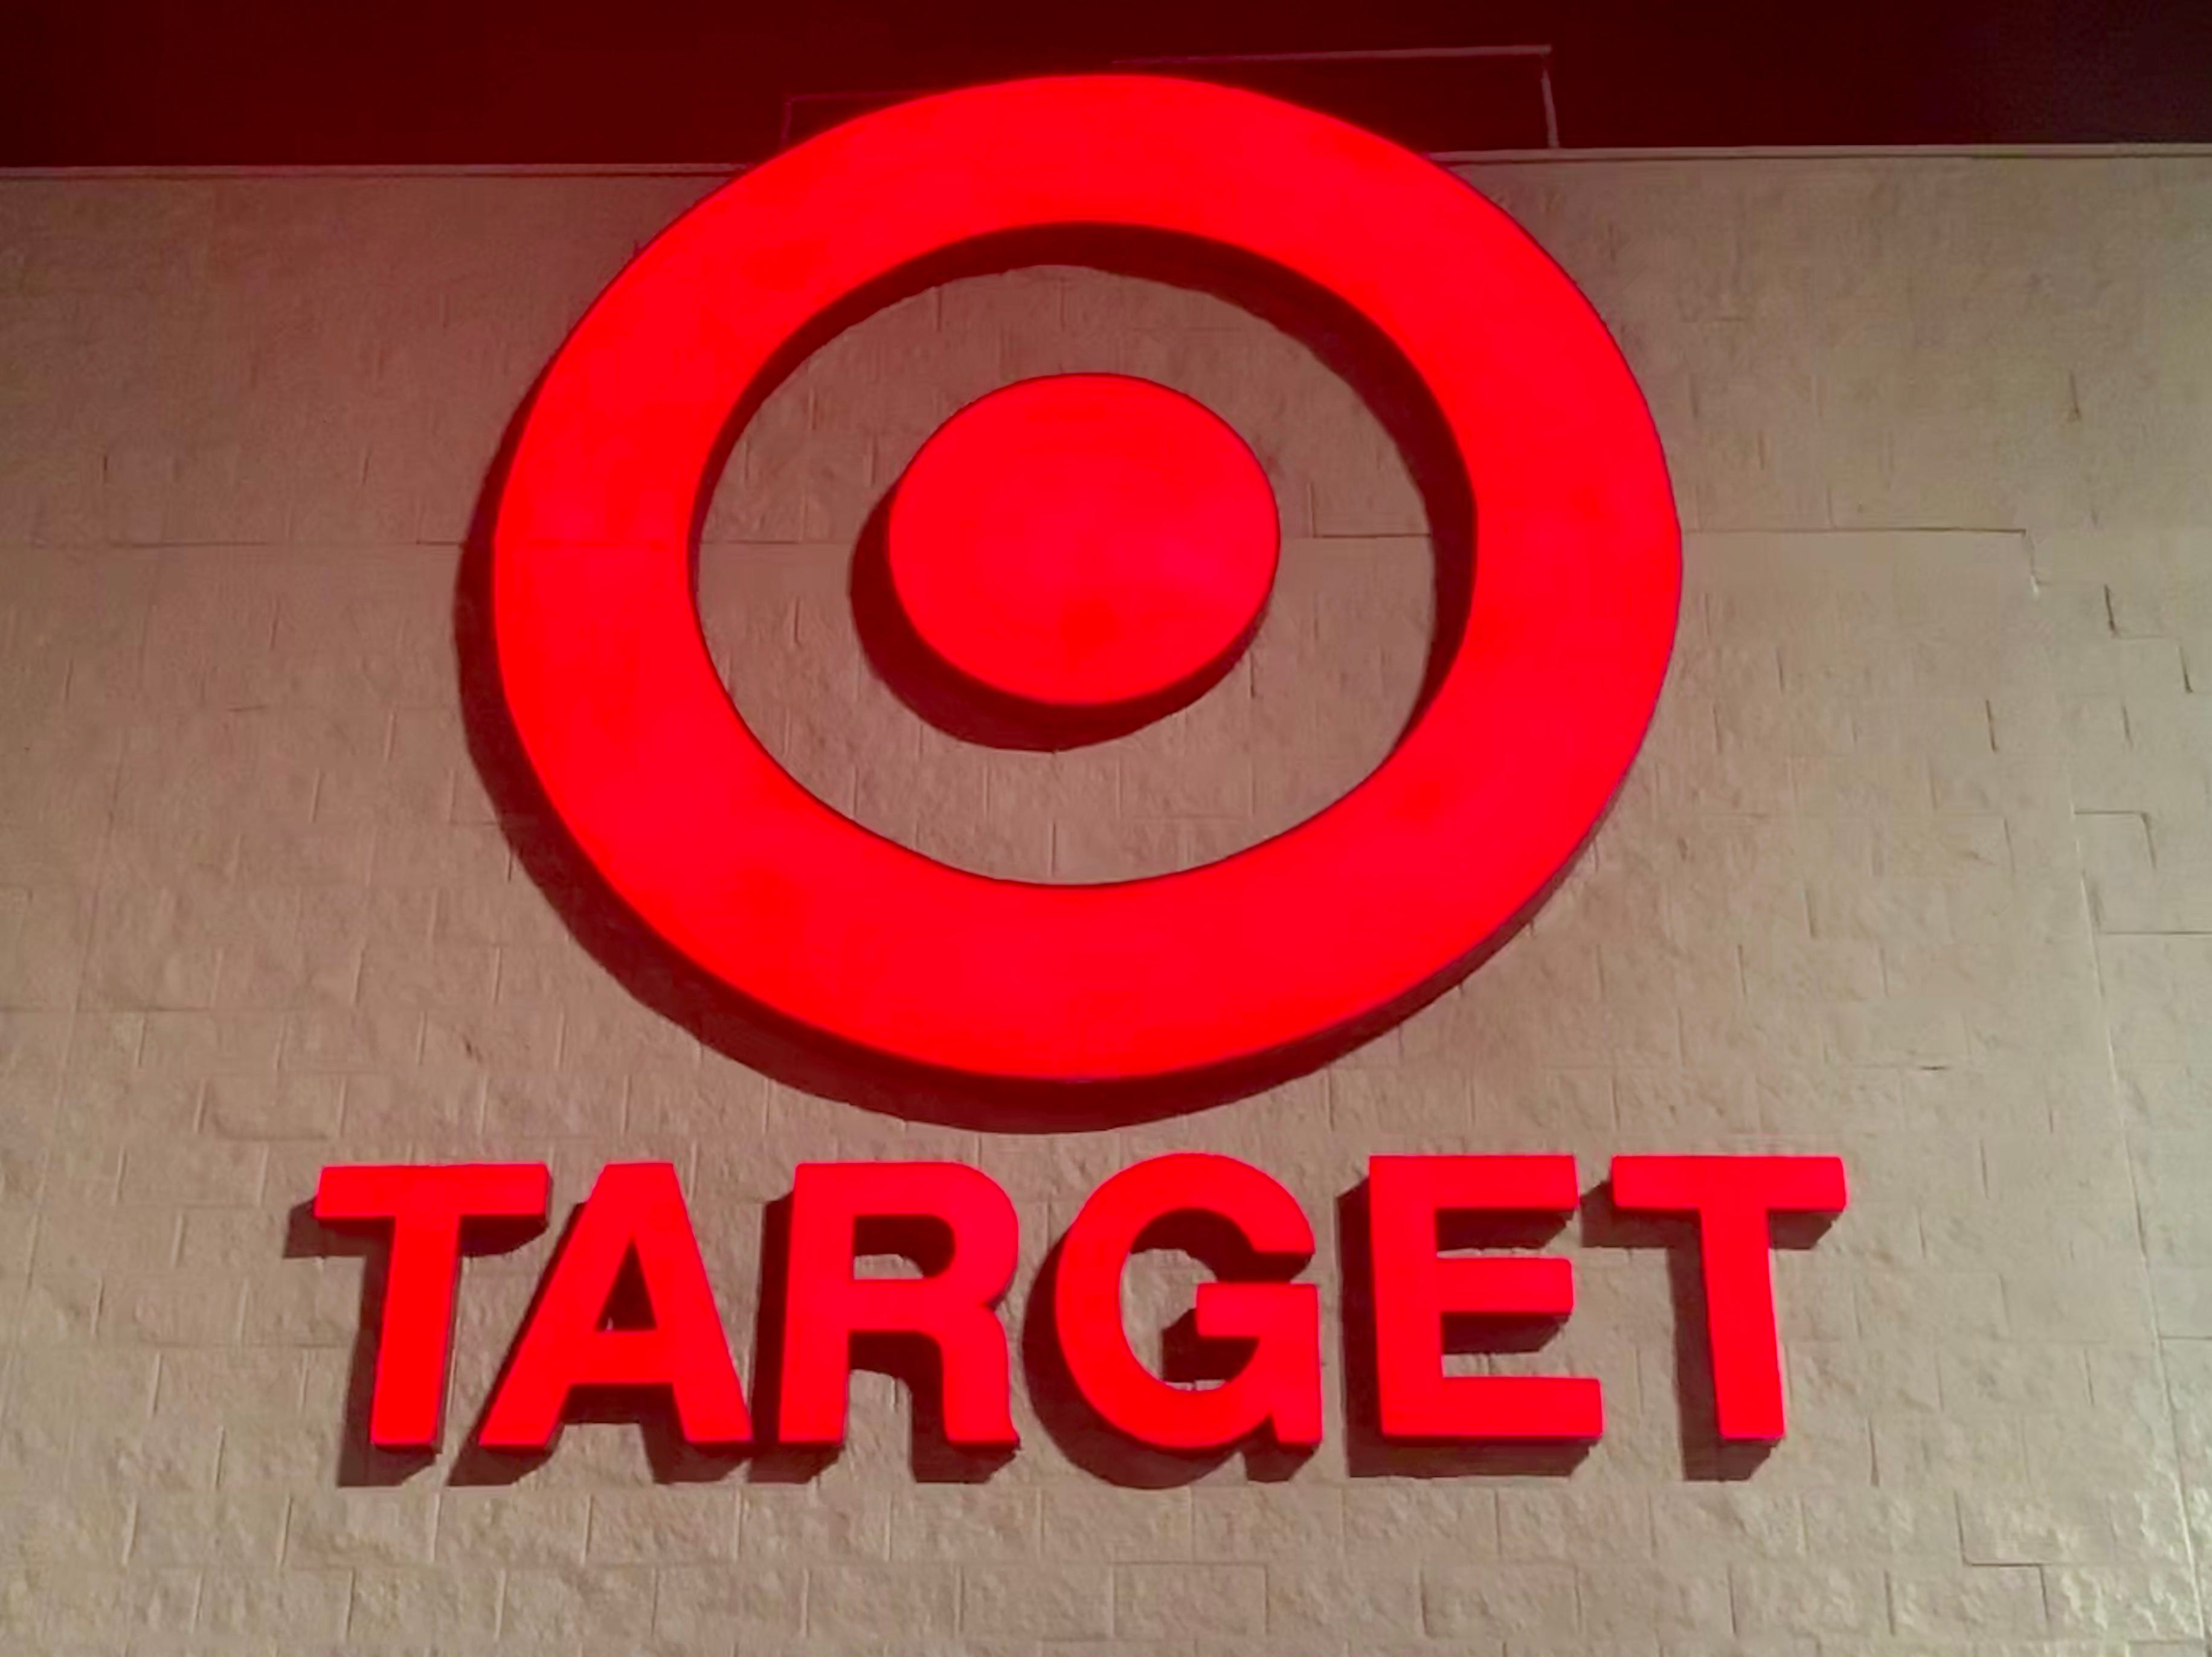 Target Circle guide: Here s what you need to know about the new shopper loyalty program